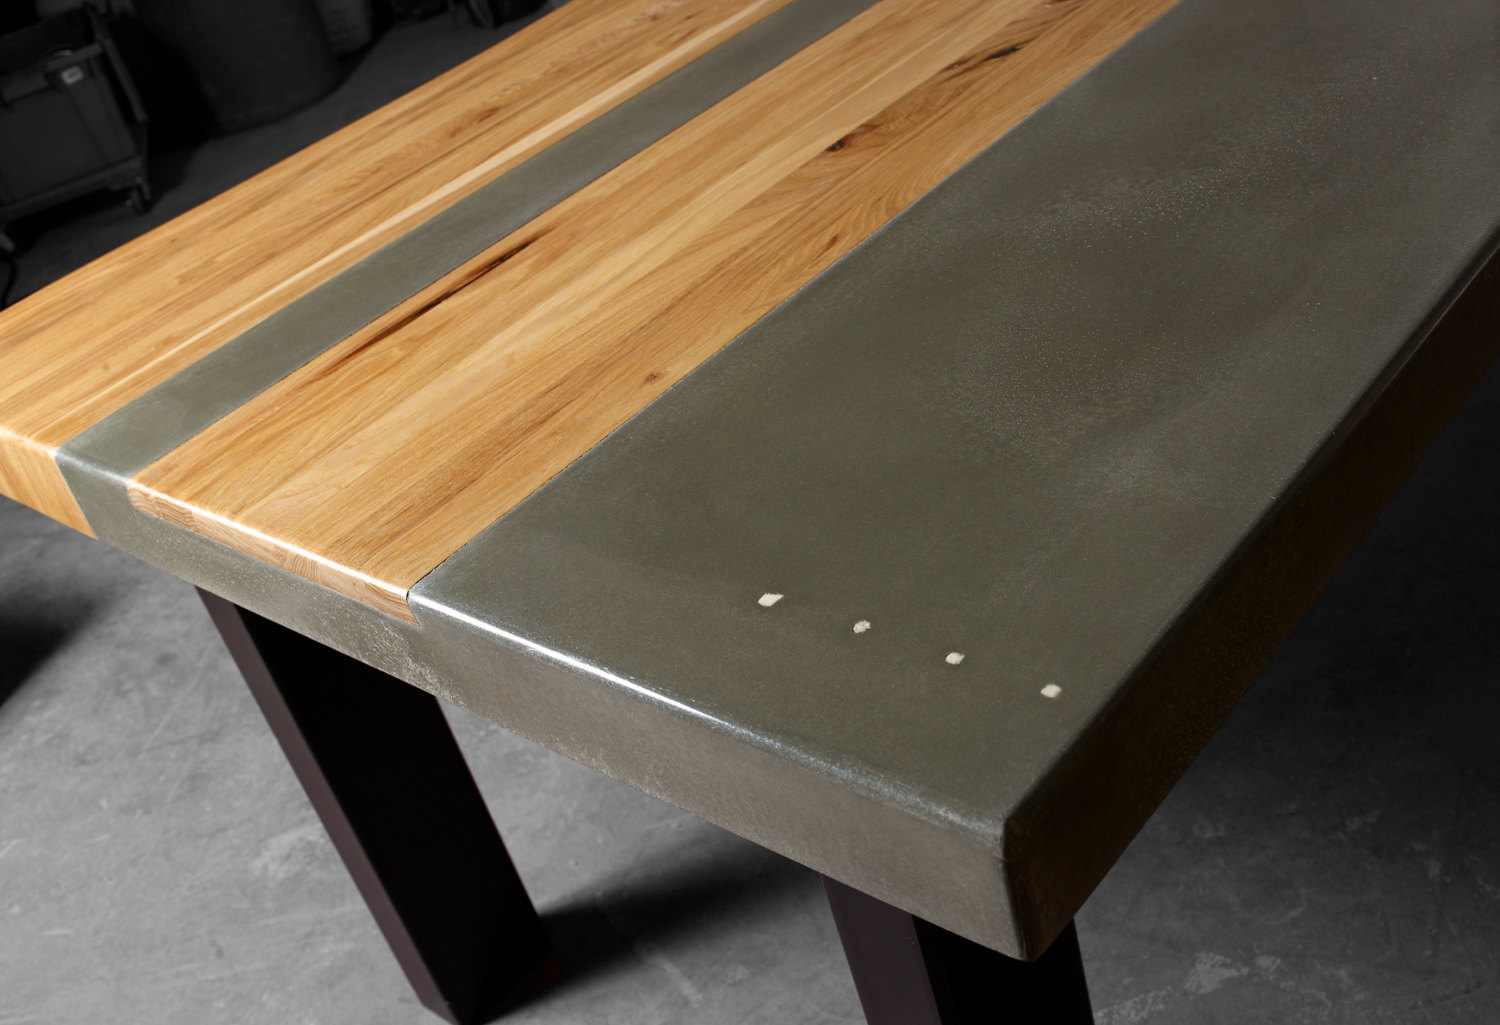 Remarkable How To Make Concrete Table With Wood Inlay Royals Courage Spiritservingveterans Wood Chair Design Ideas Spiritservingveteransorg